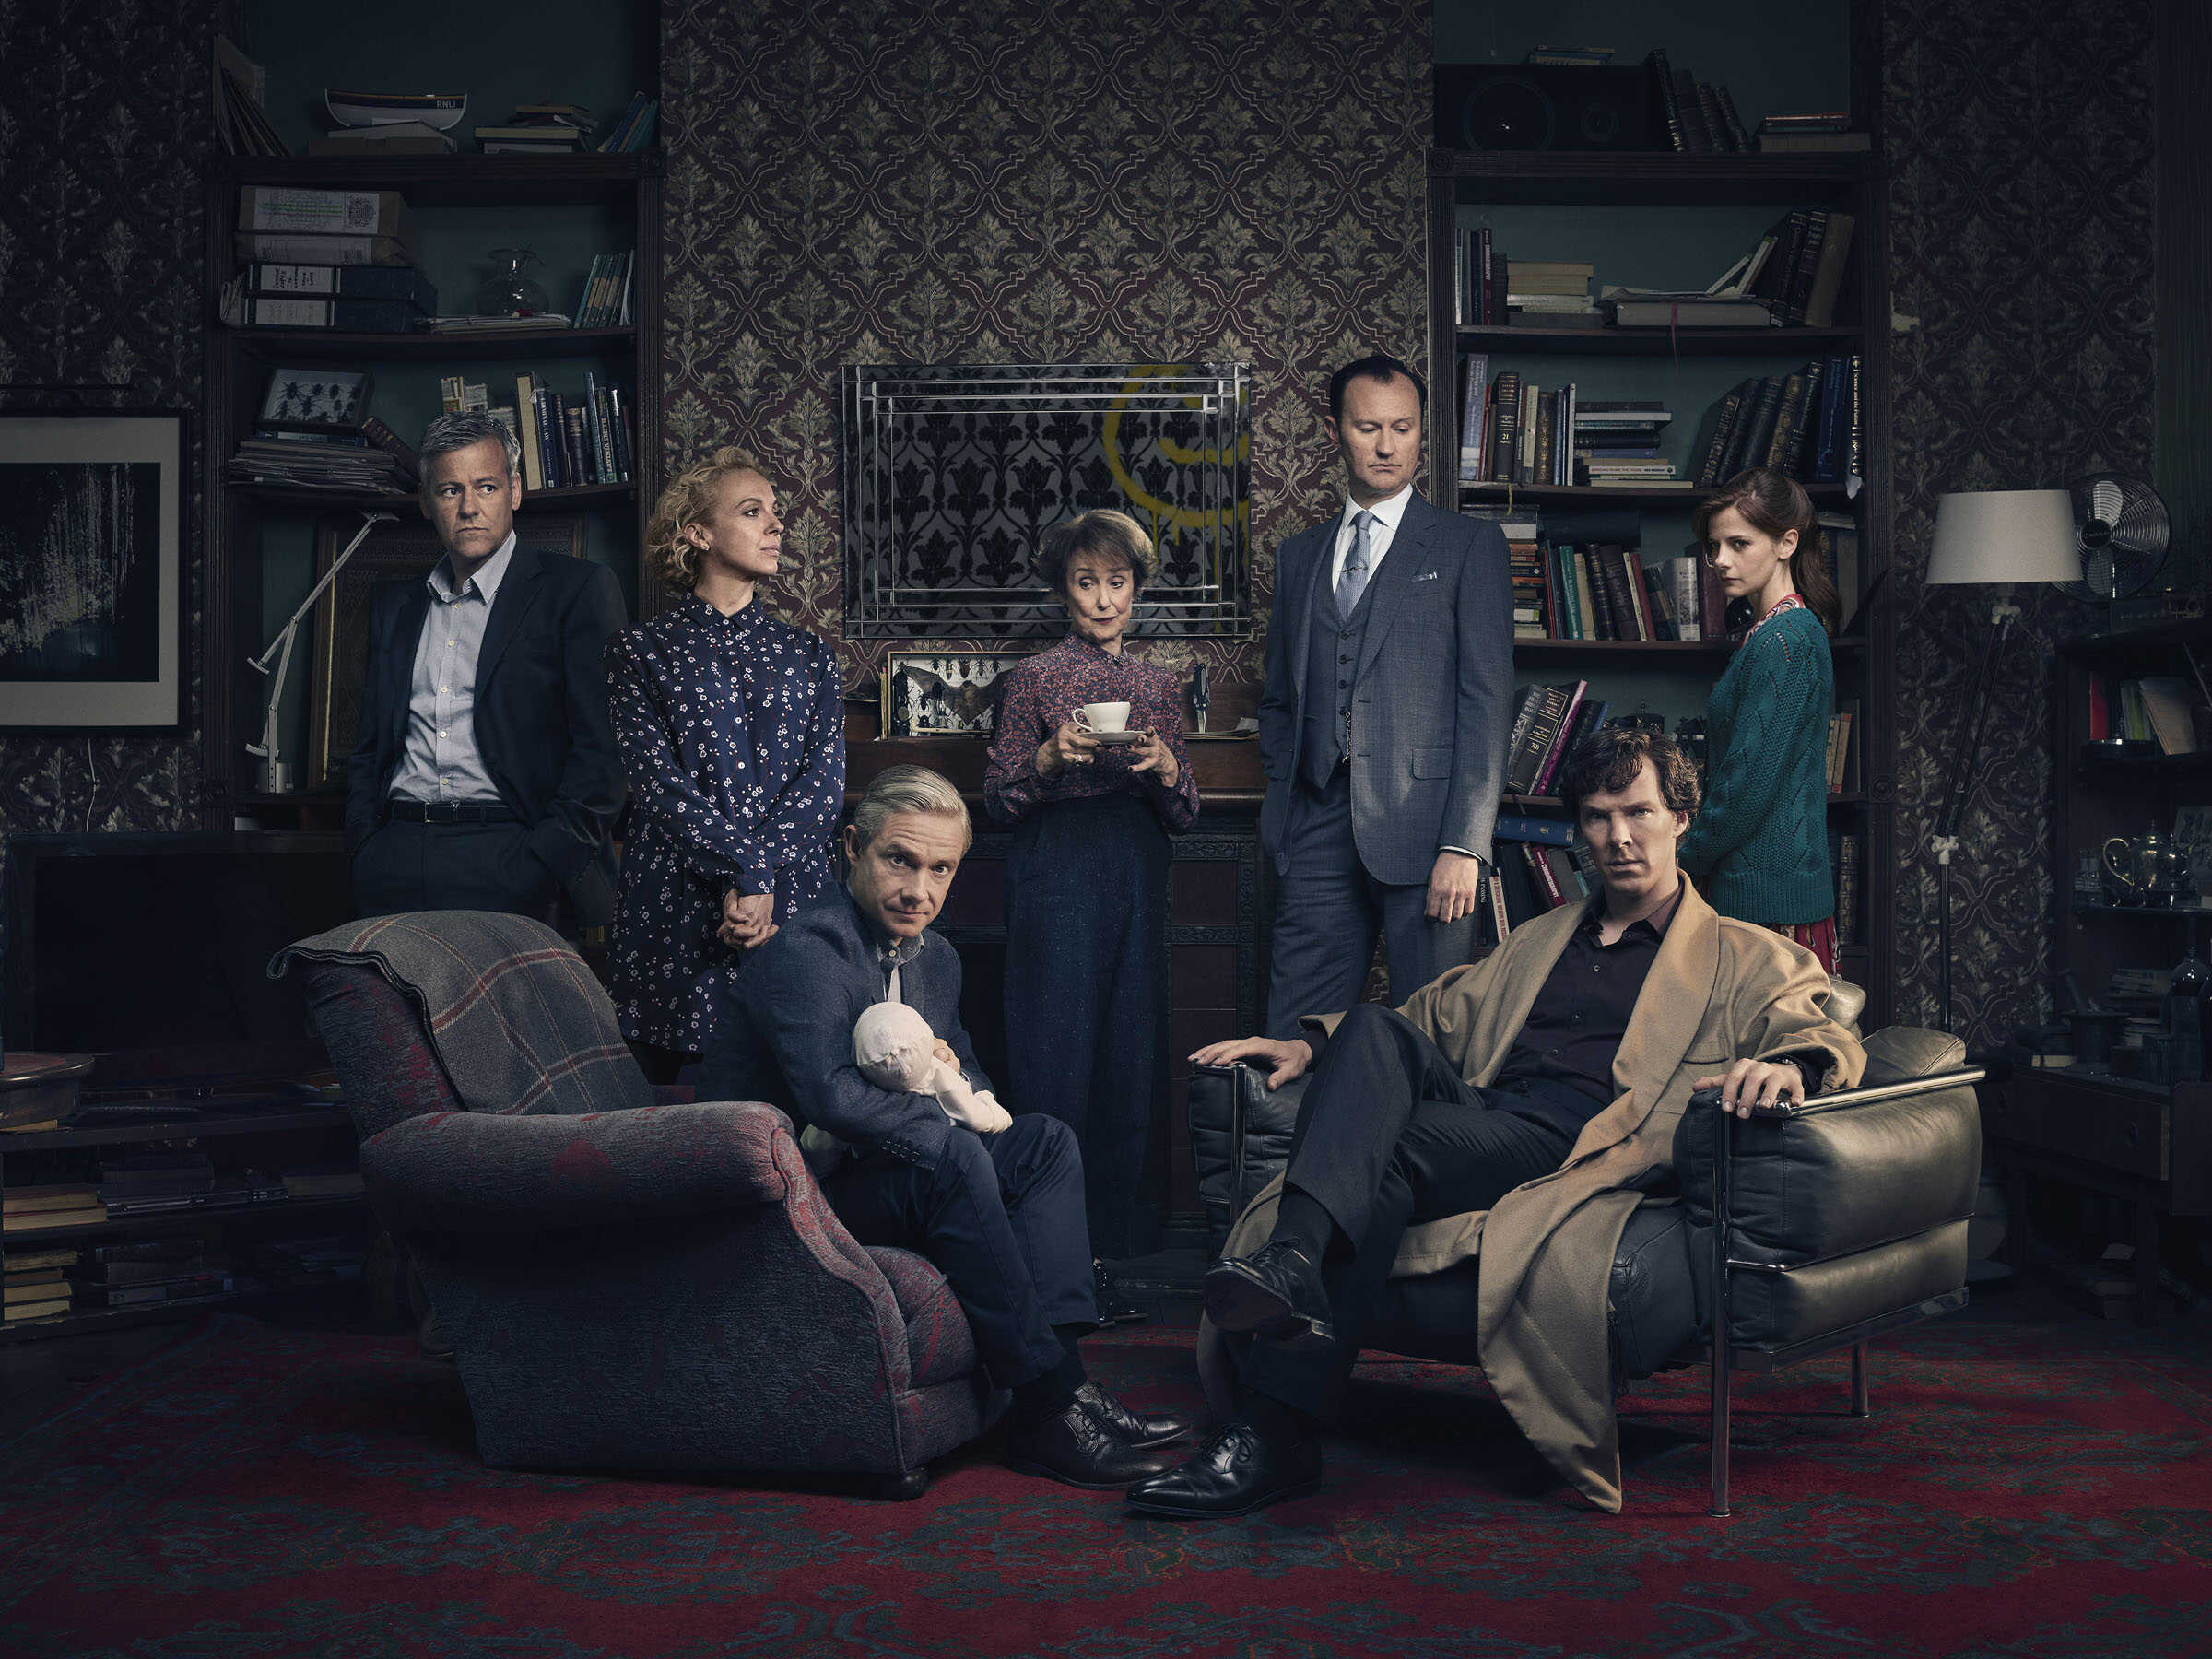 https://www-tc.pbs.org/wgbh/masterpiece/wp-content/uploads/2017/01/Sherlock-S4-Tableau.jpg